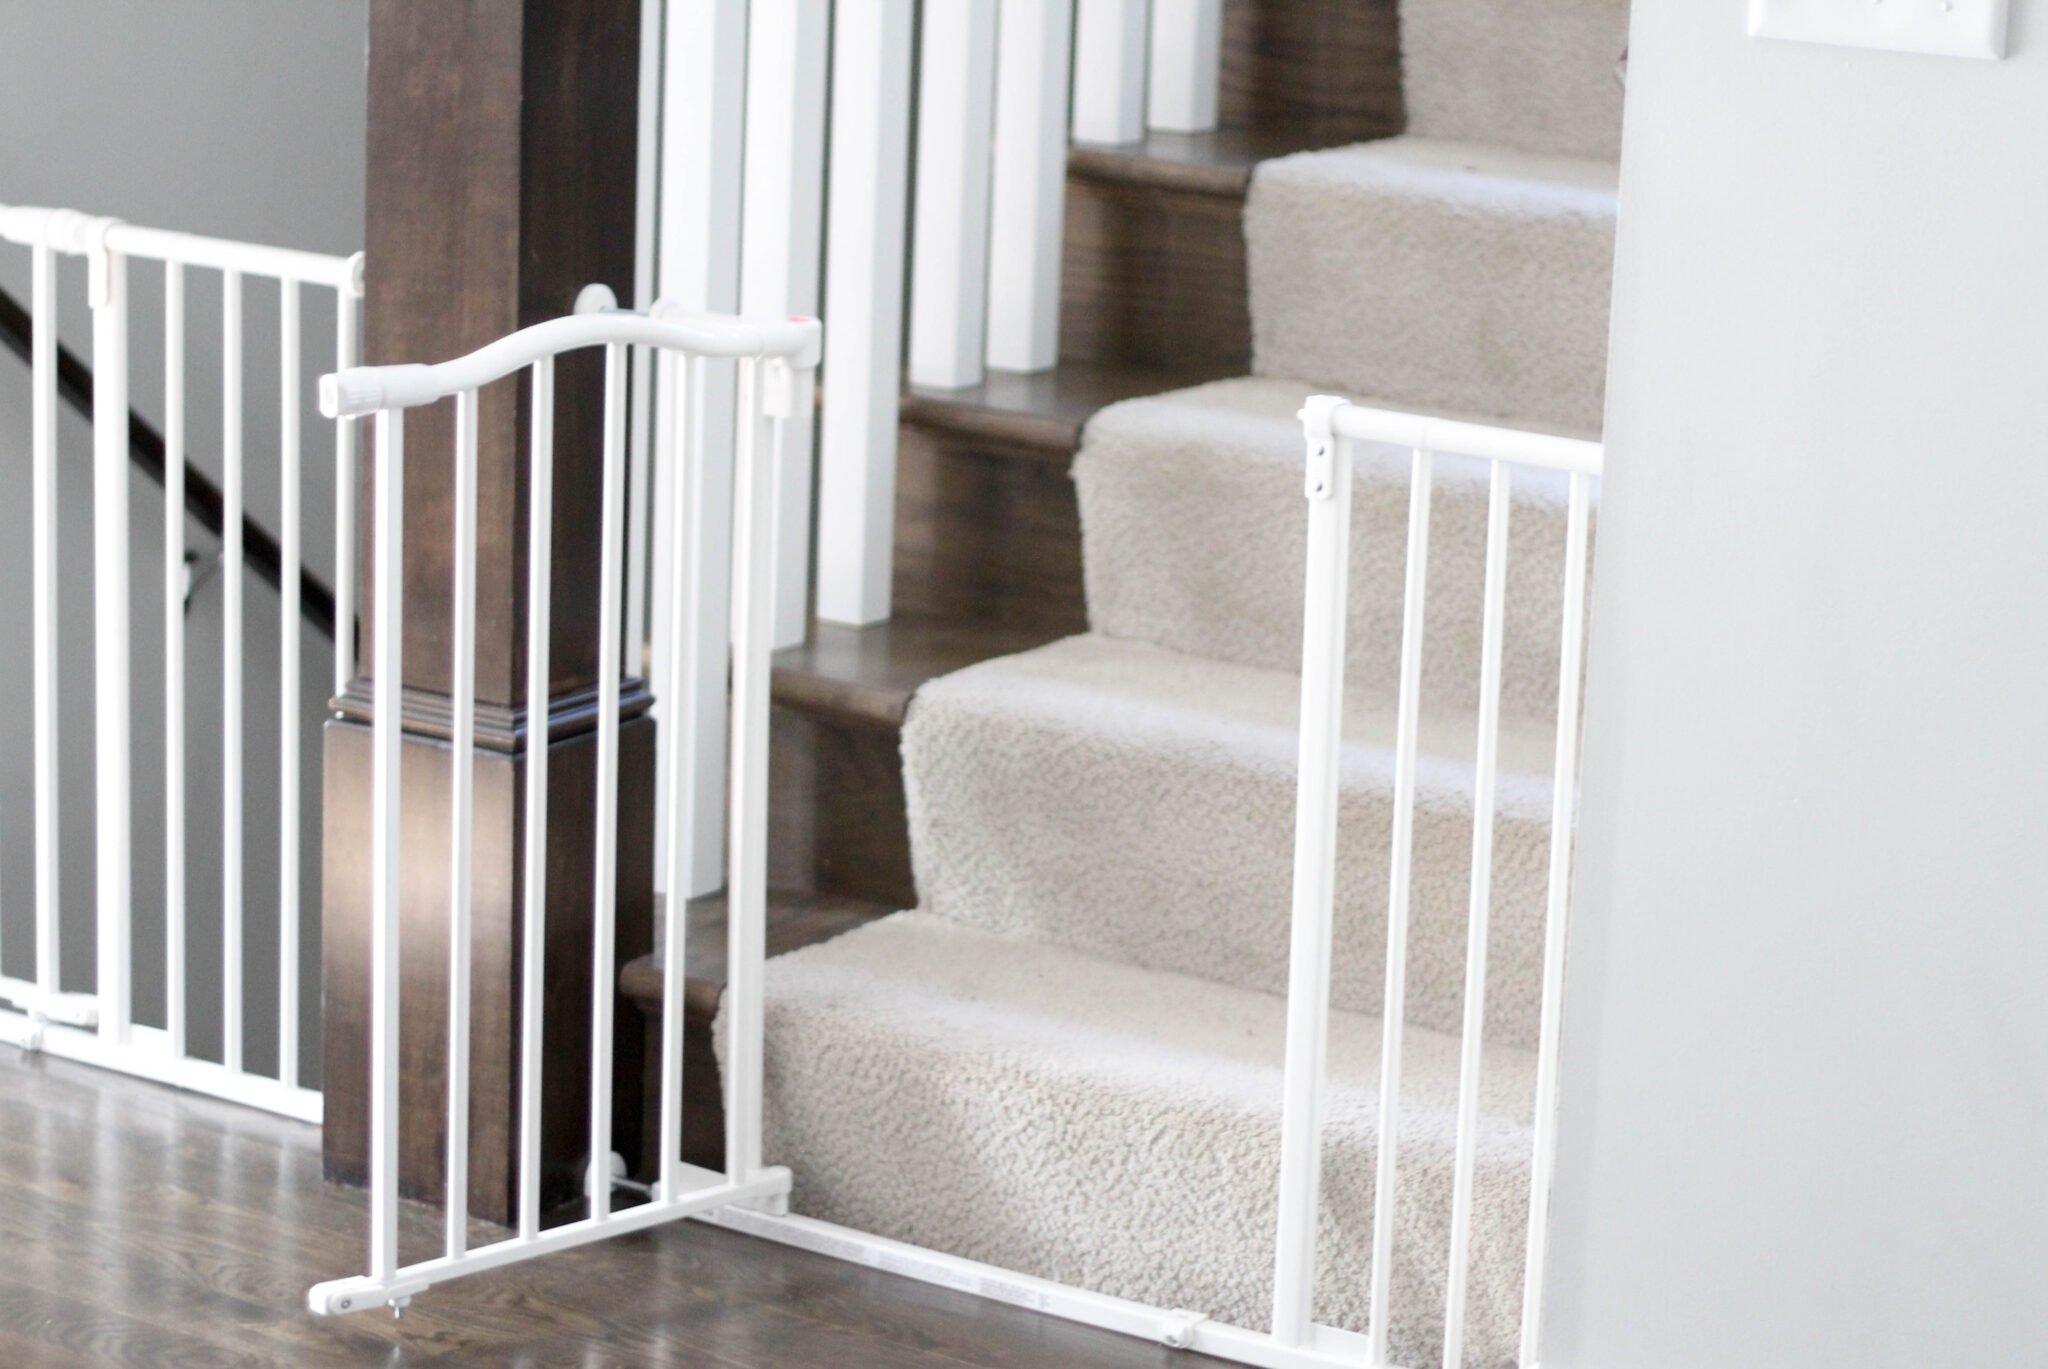 North States Auto-Close Baby Gate Review - White arched north states baby gate